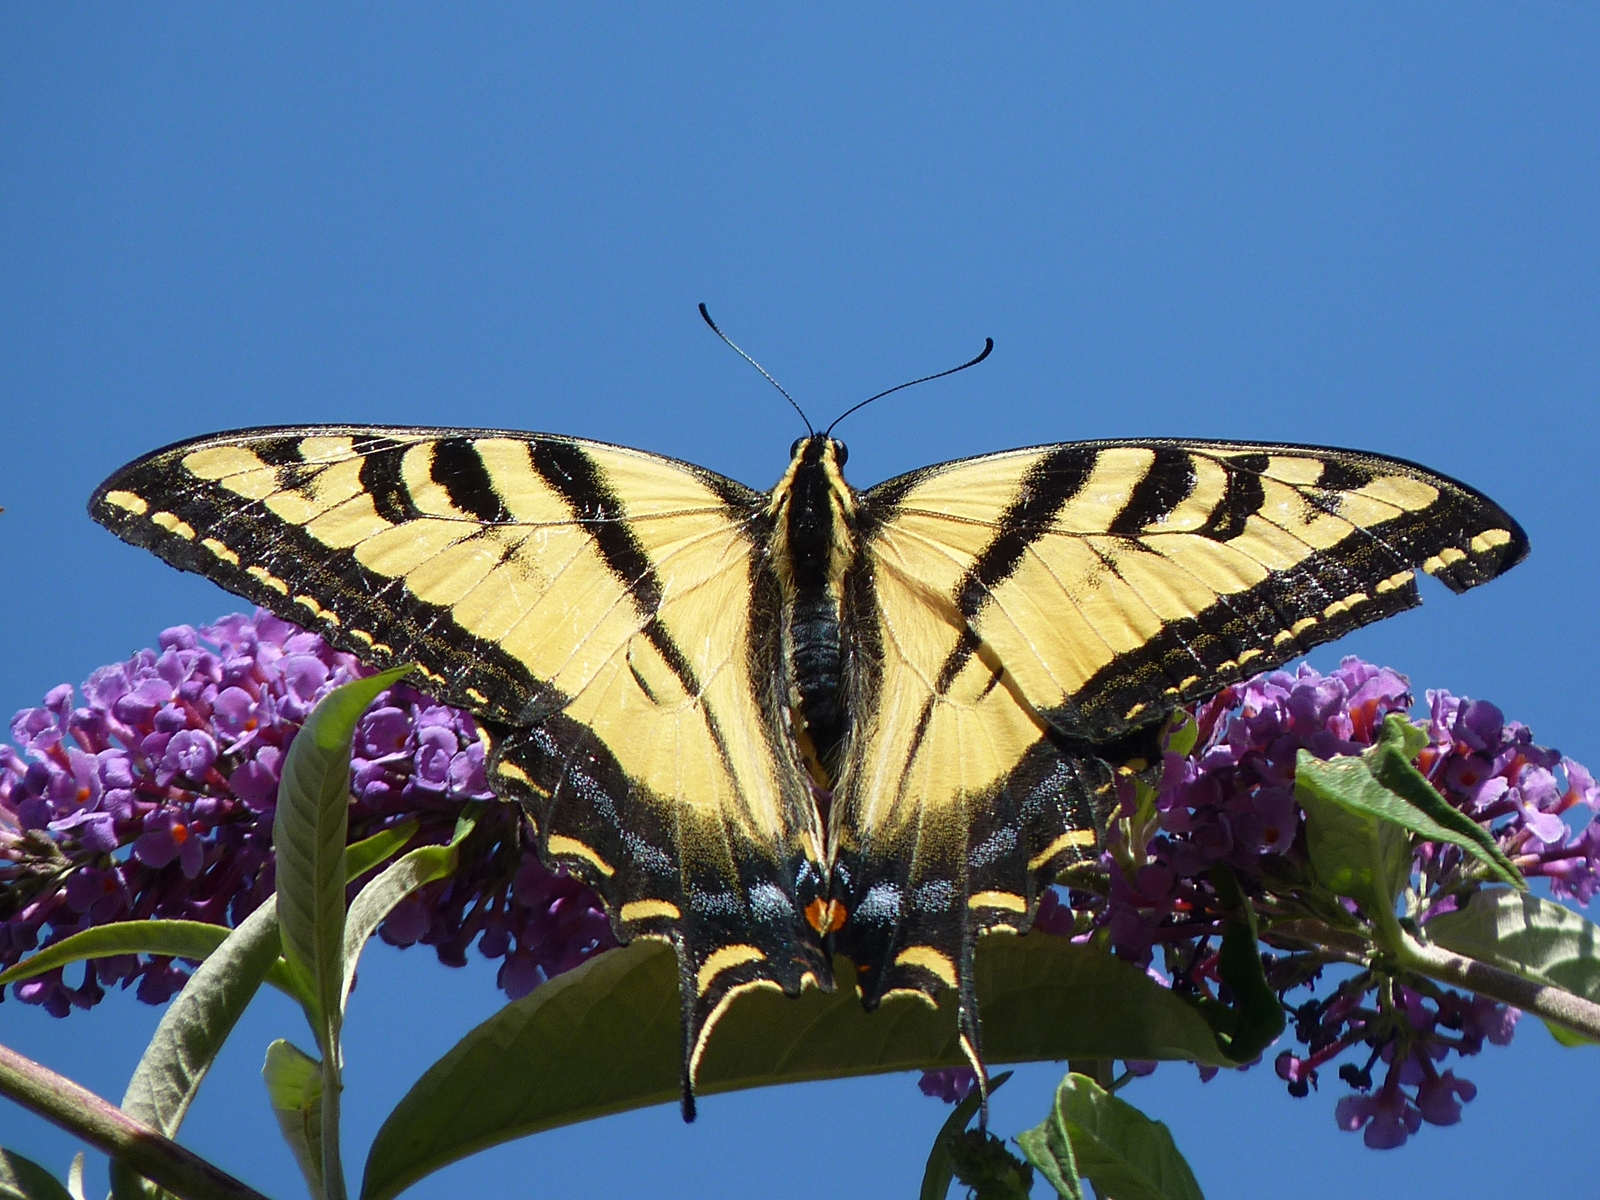 A Western Tiger Swallowtail butterfly in all its glory. Photo courtesy Mathesont @flickr